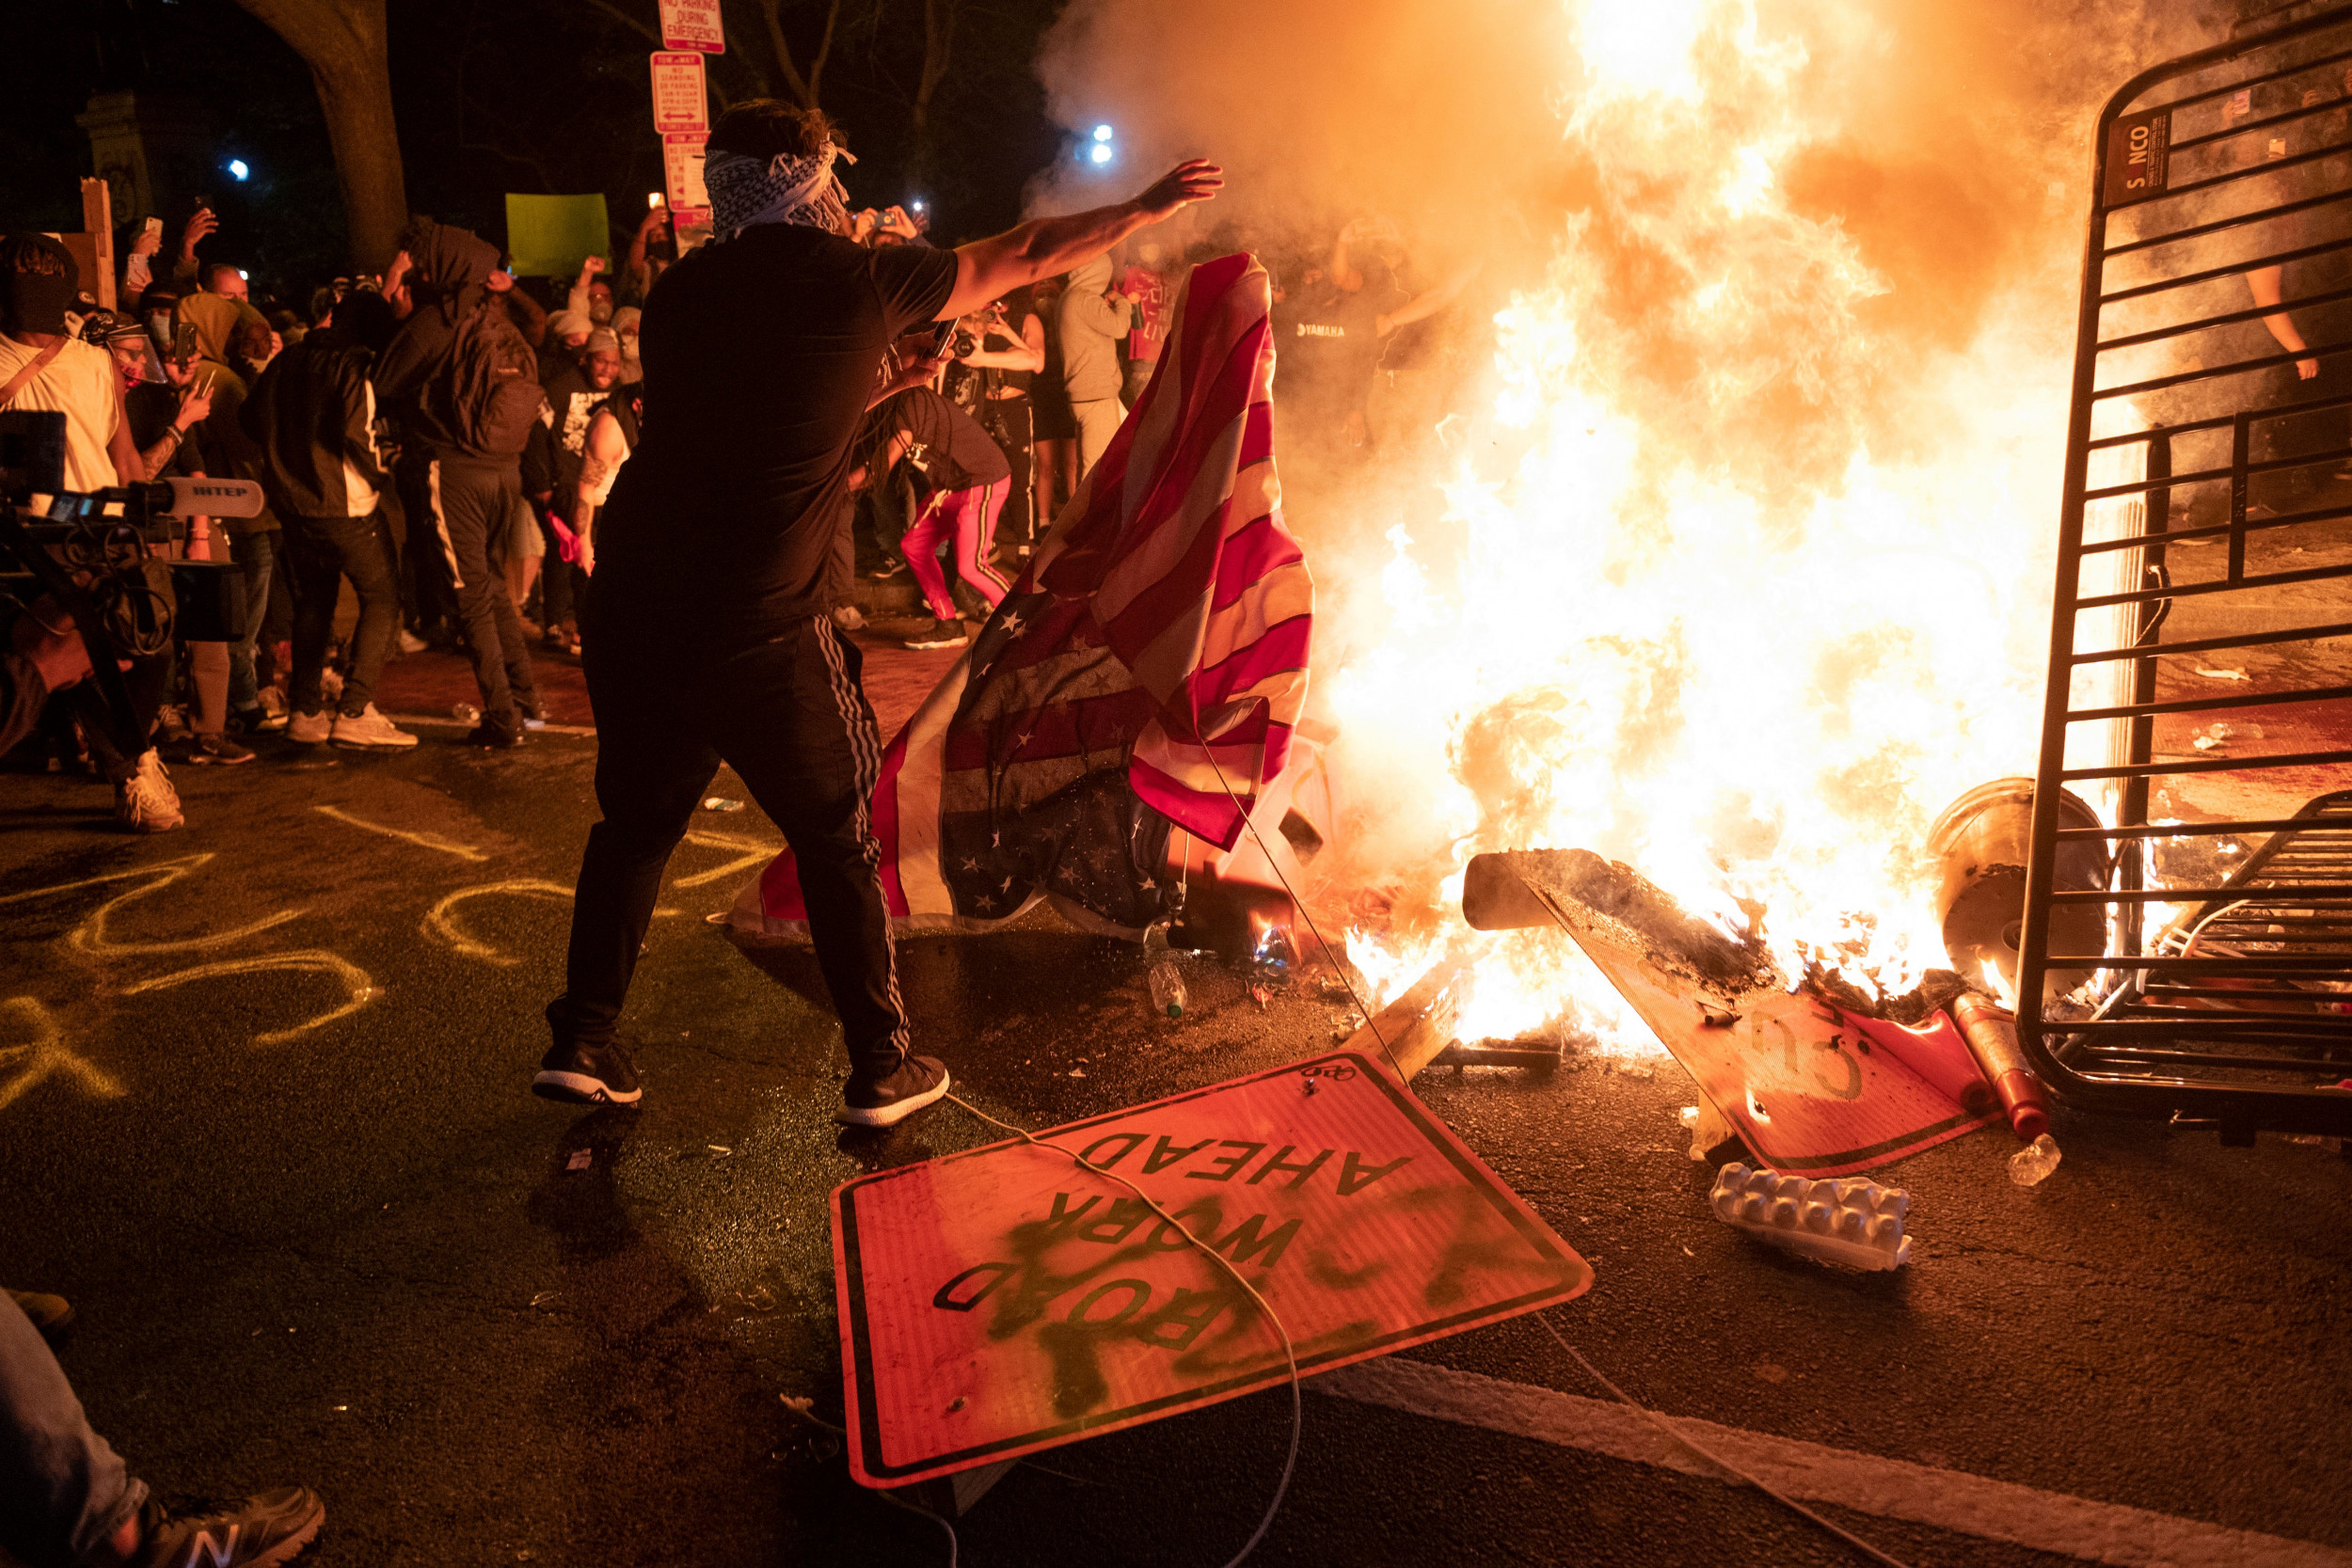 Trump Demands End to Flag Burning as Protests Rage, Statues Fall